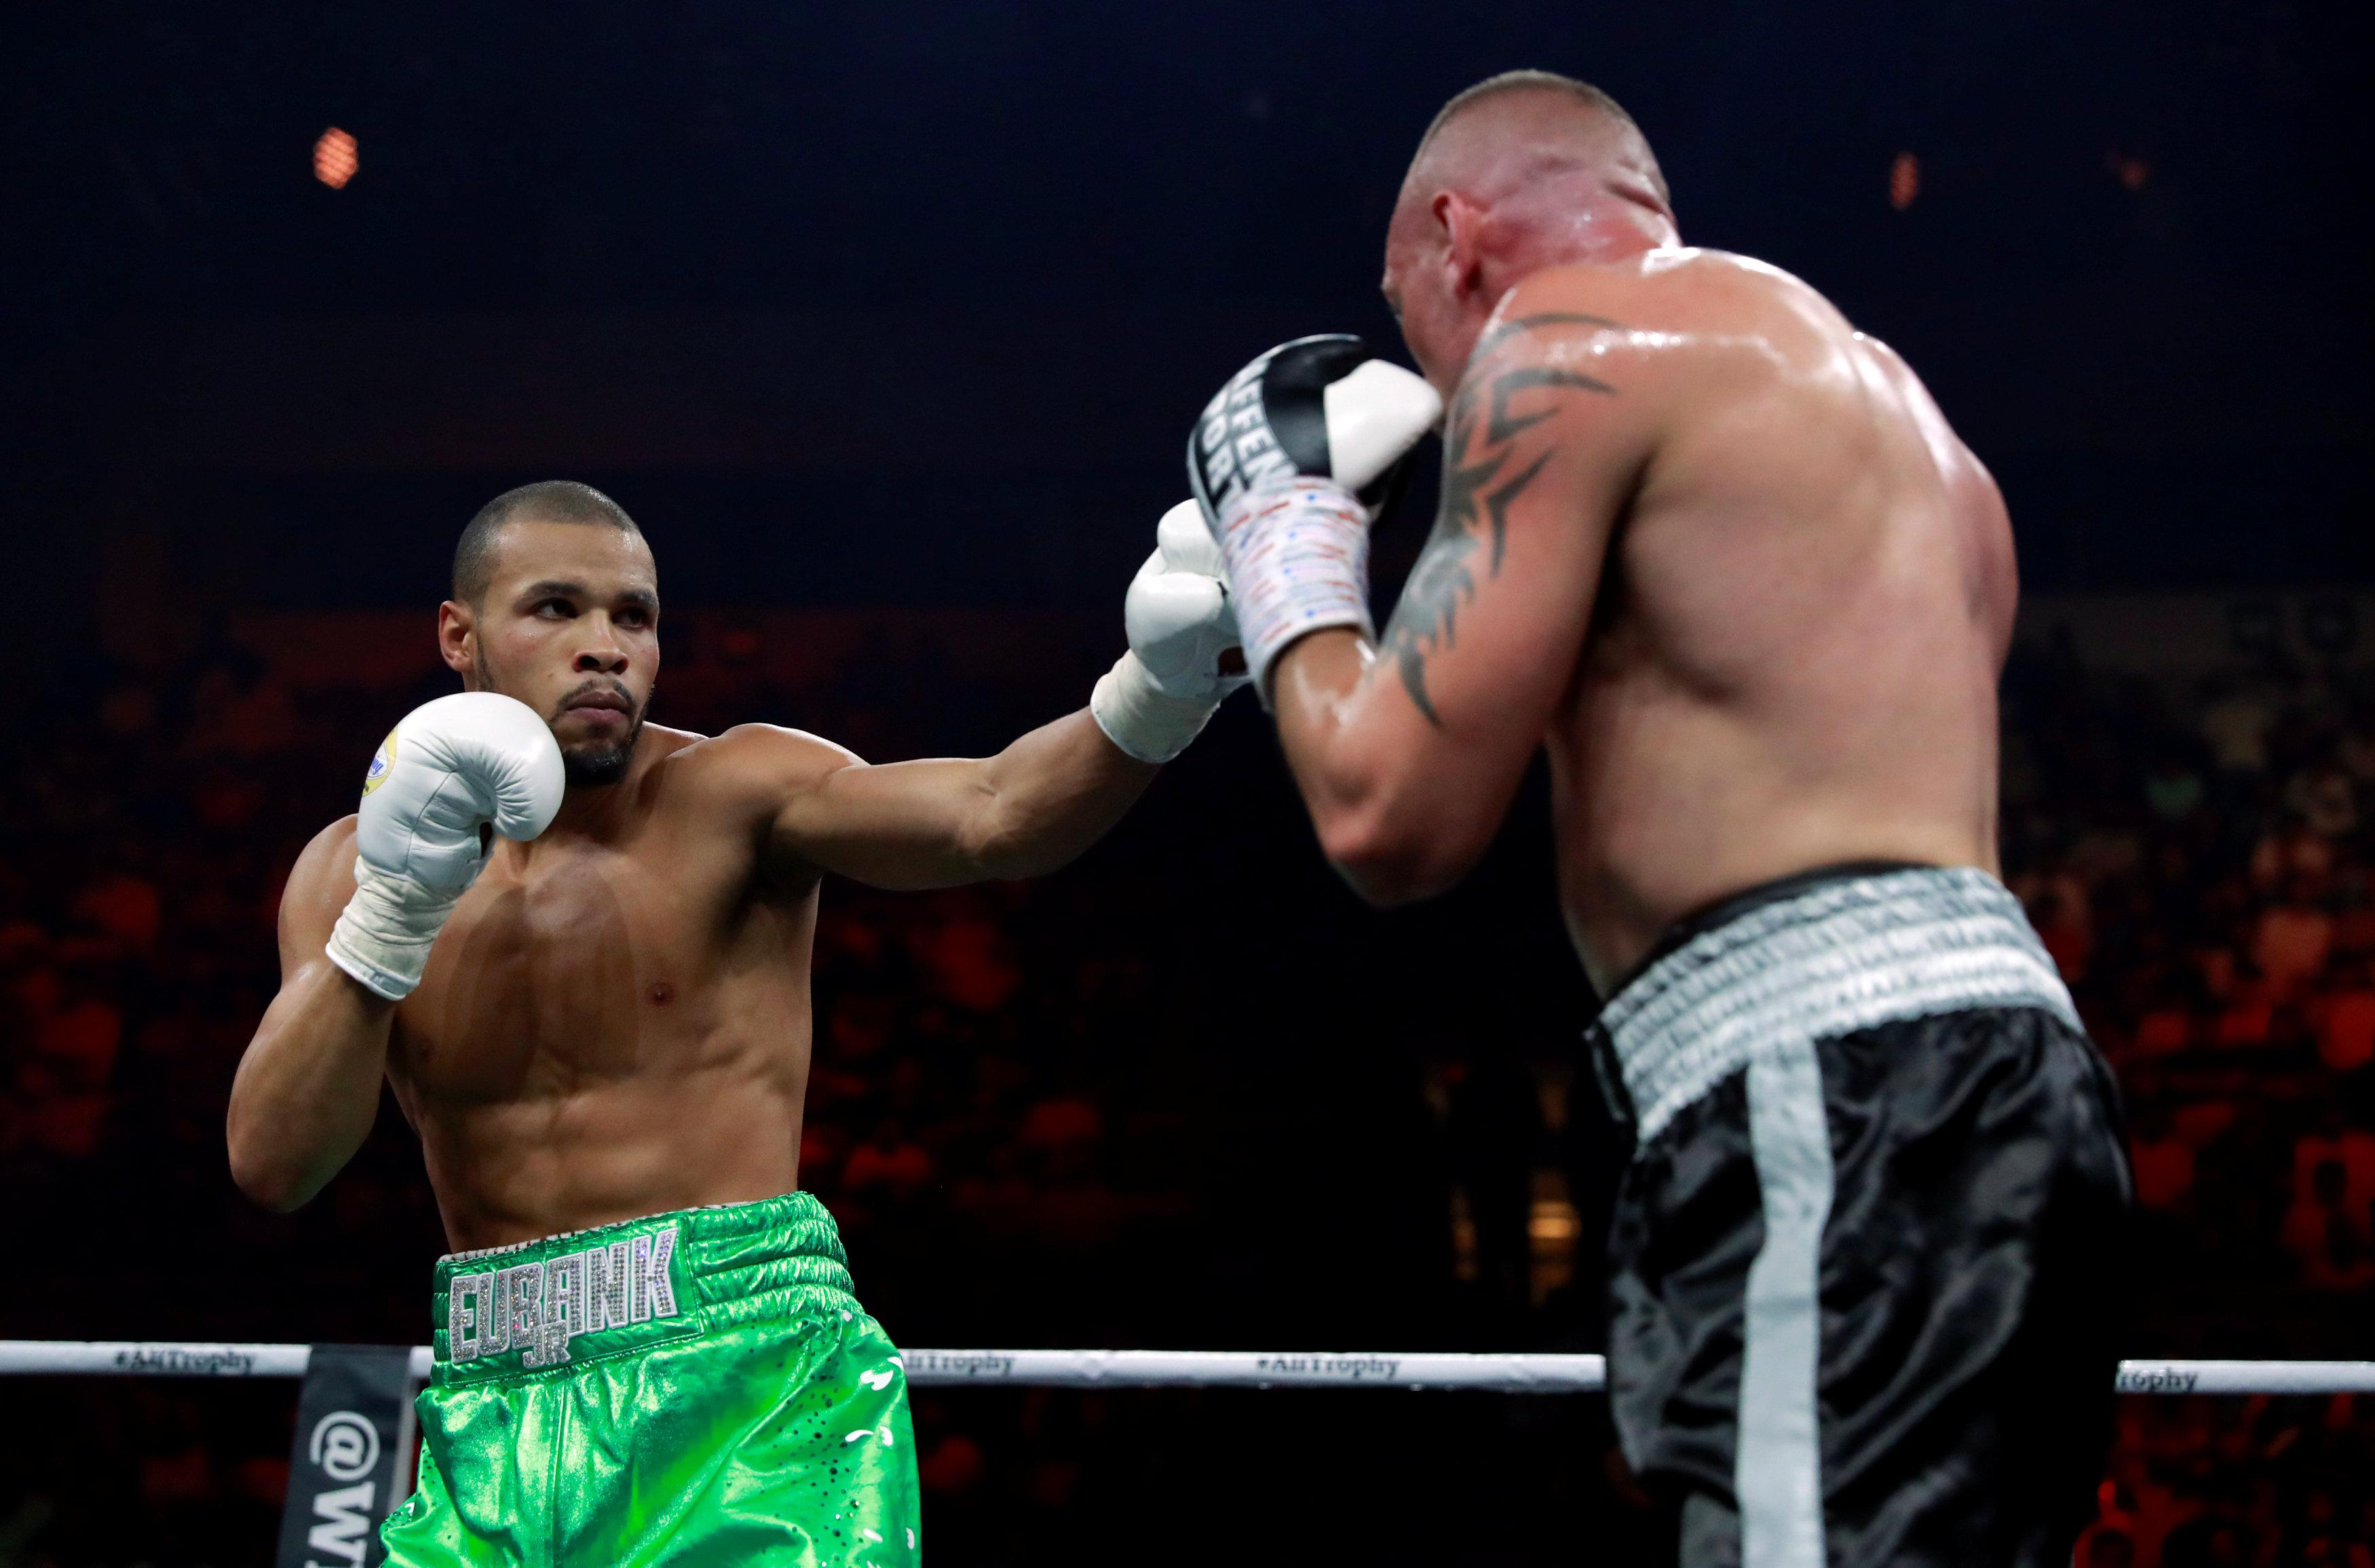 Eubank Jr extended his record to 27-7 after beating his Irish opponent